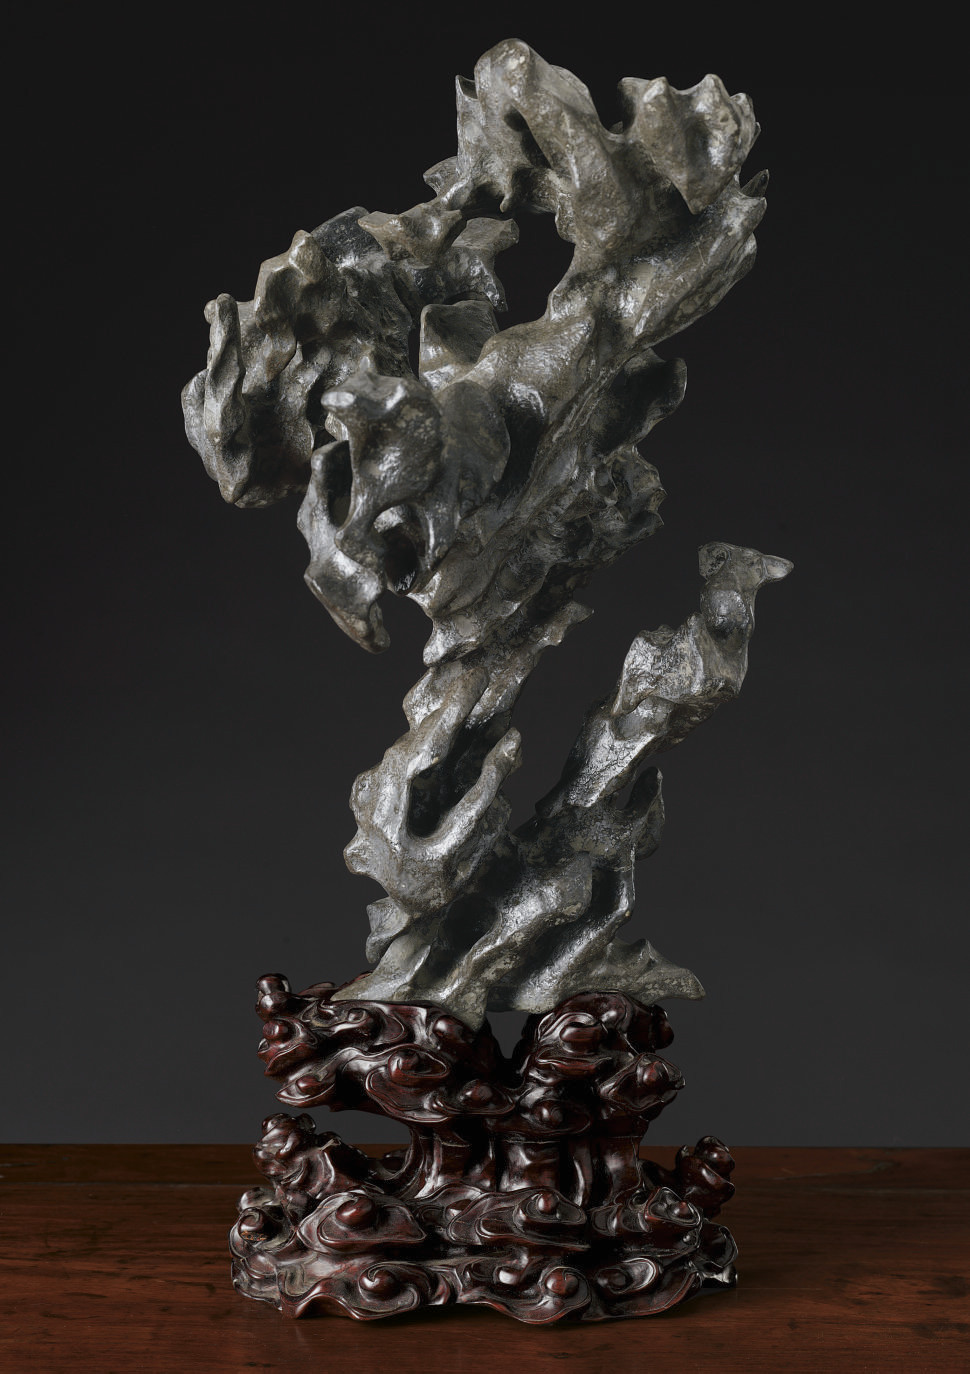 A SMALL YING SCHOLAR'S ROCK